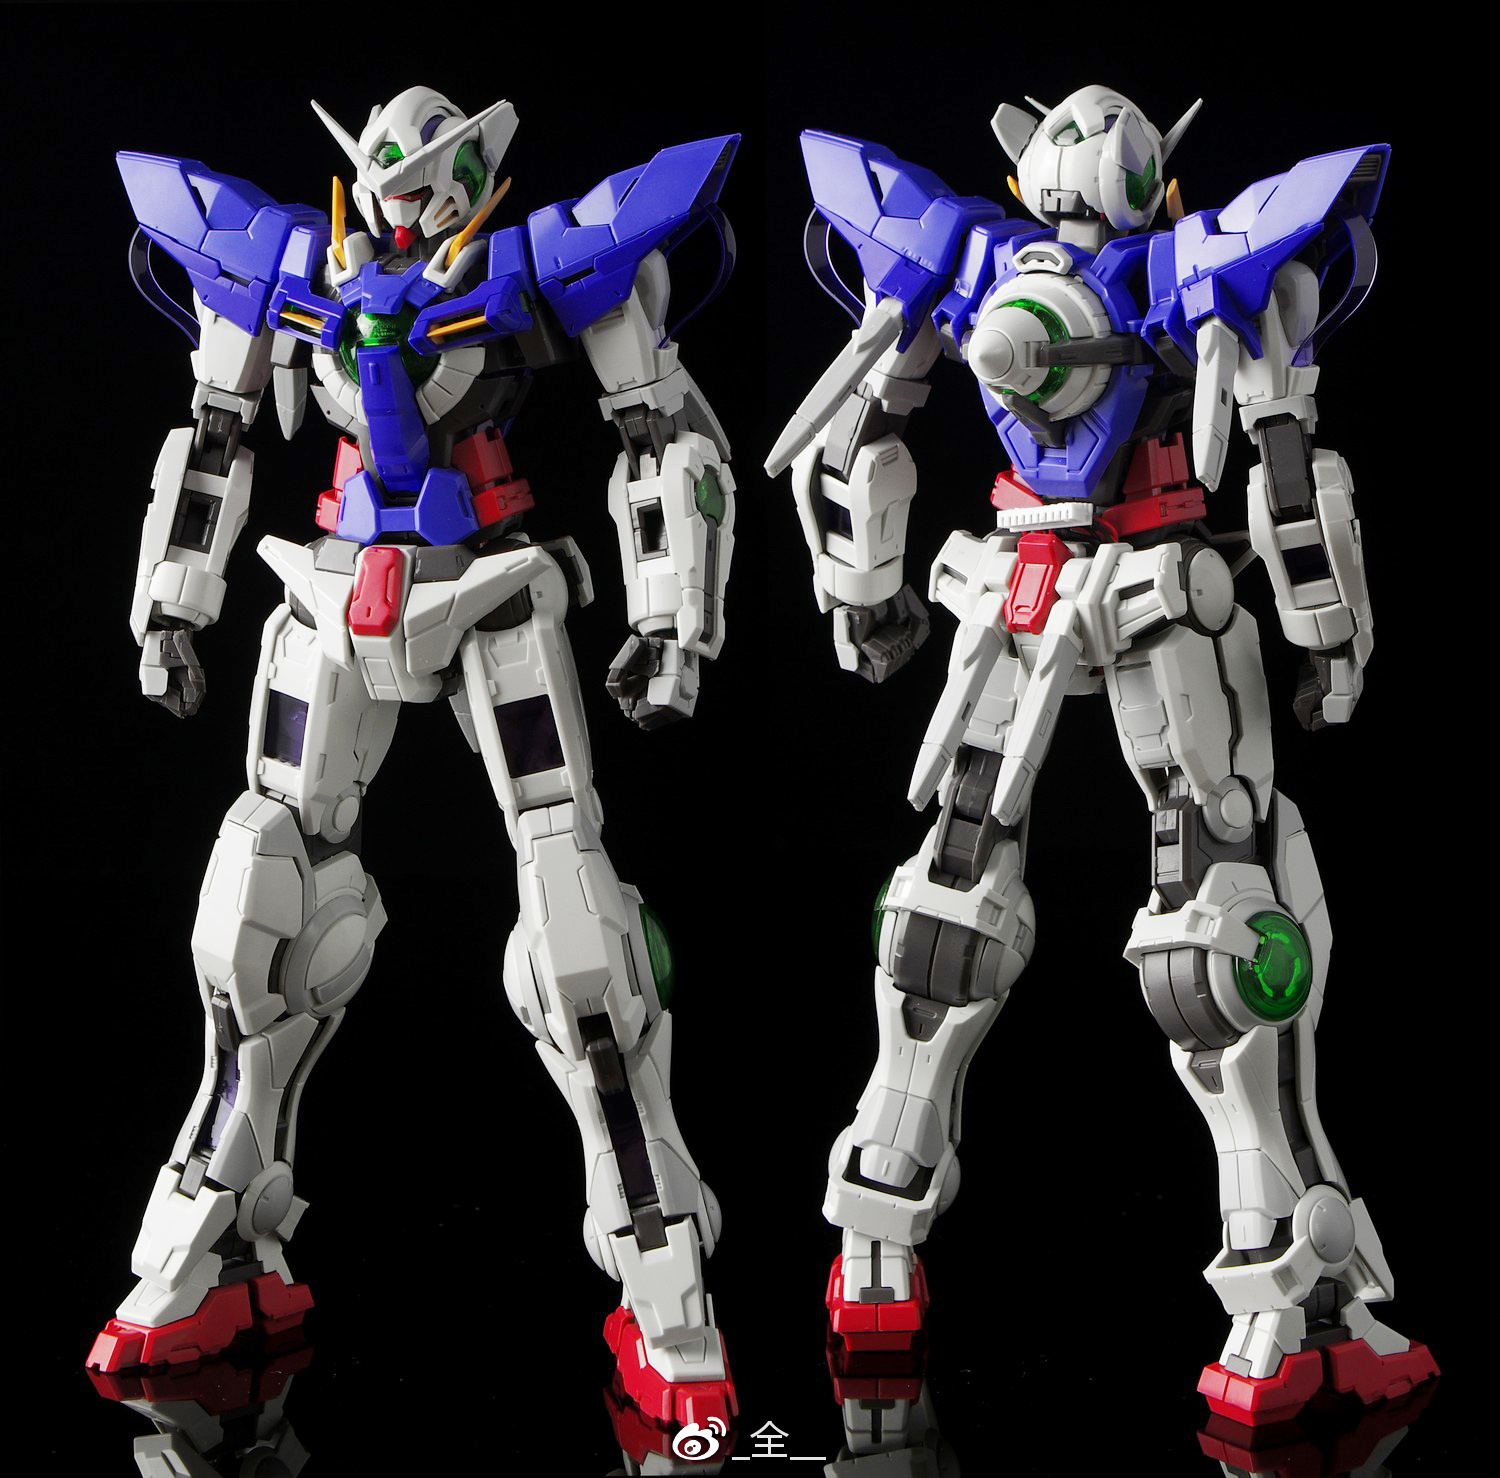 S269_mg_exia_led_hobby_star_inask_035.jpg